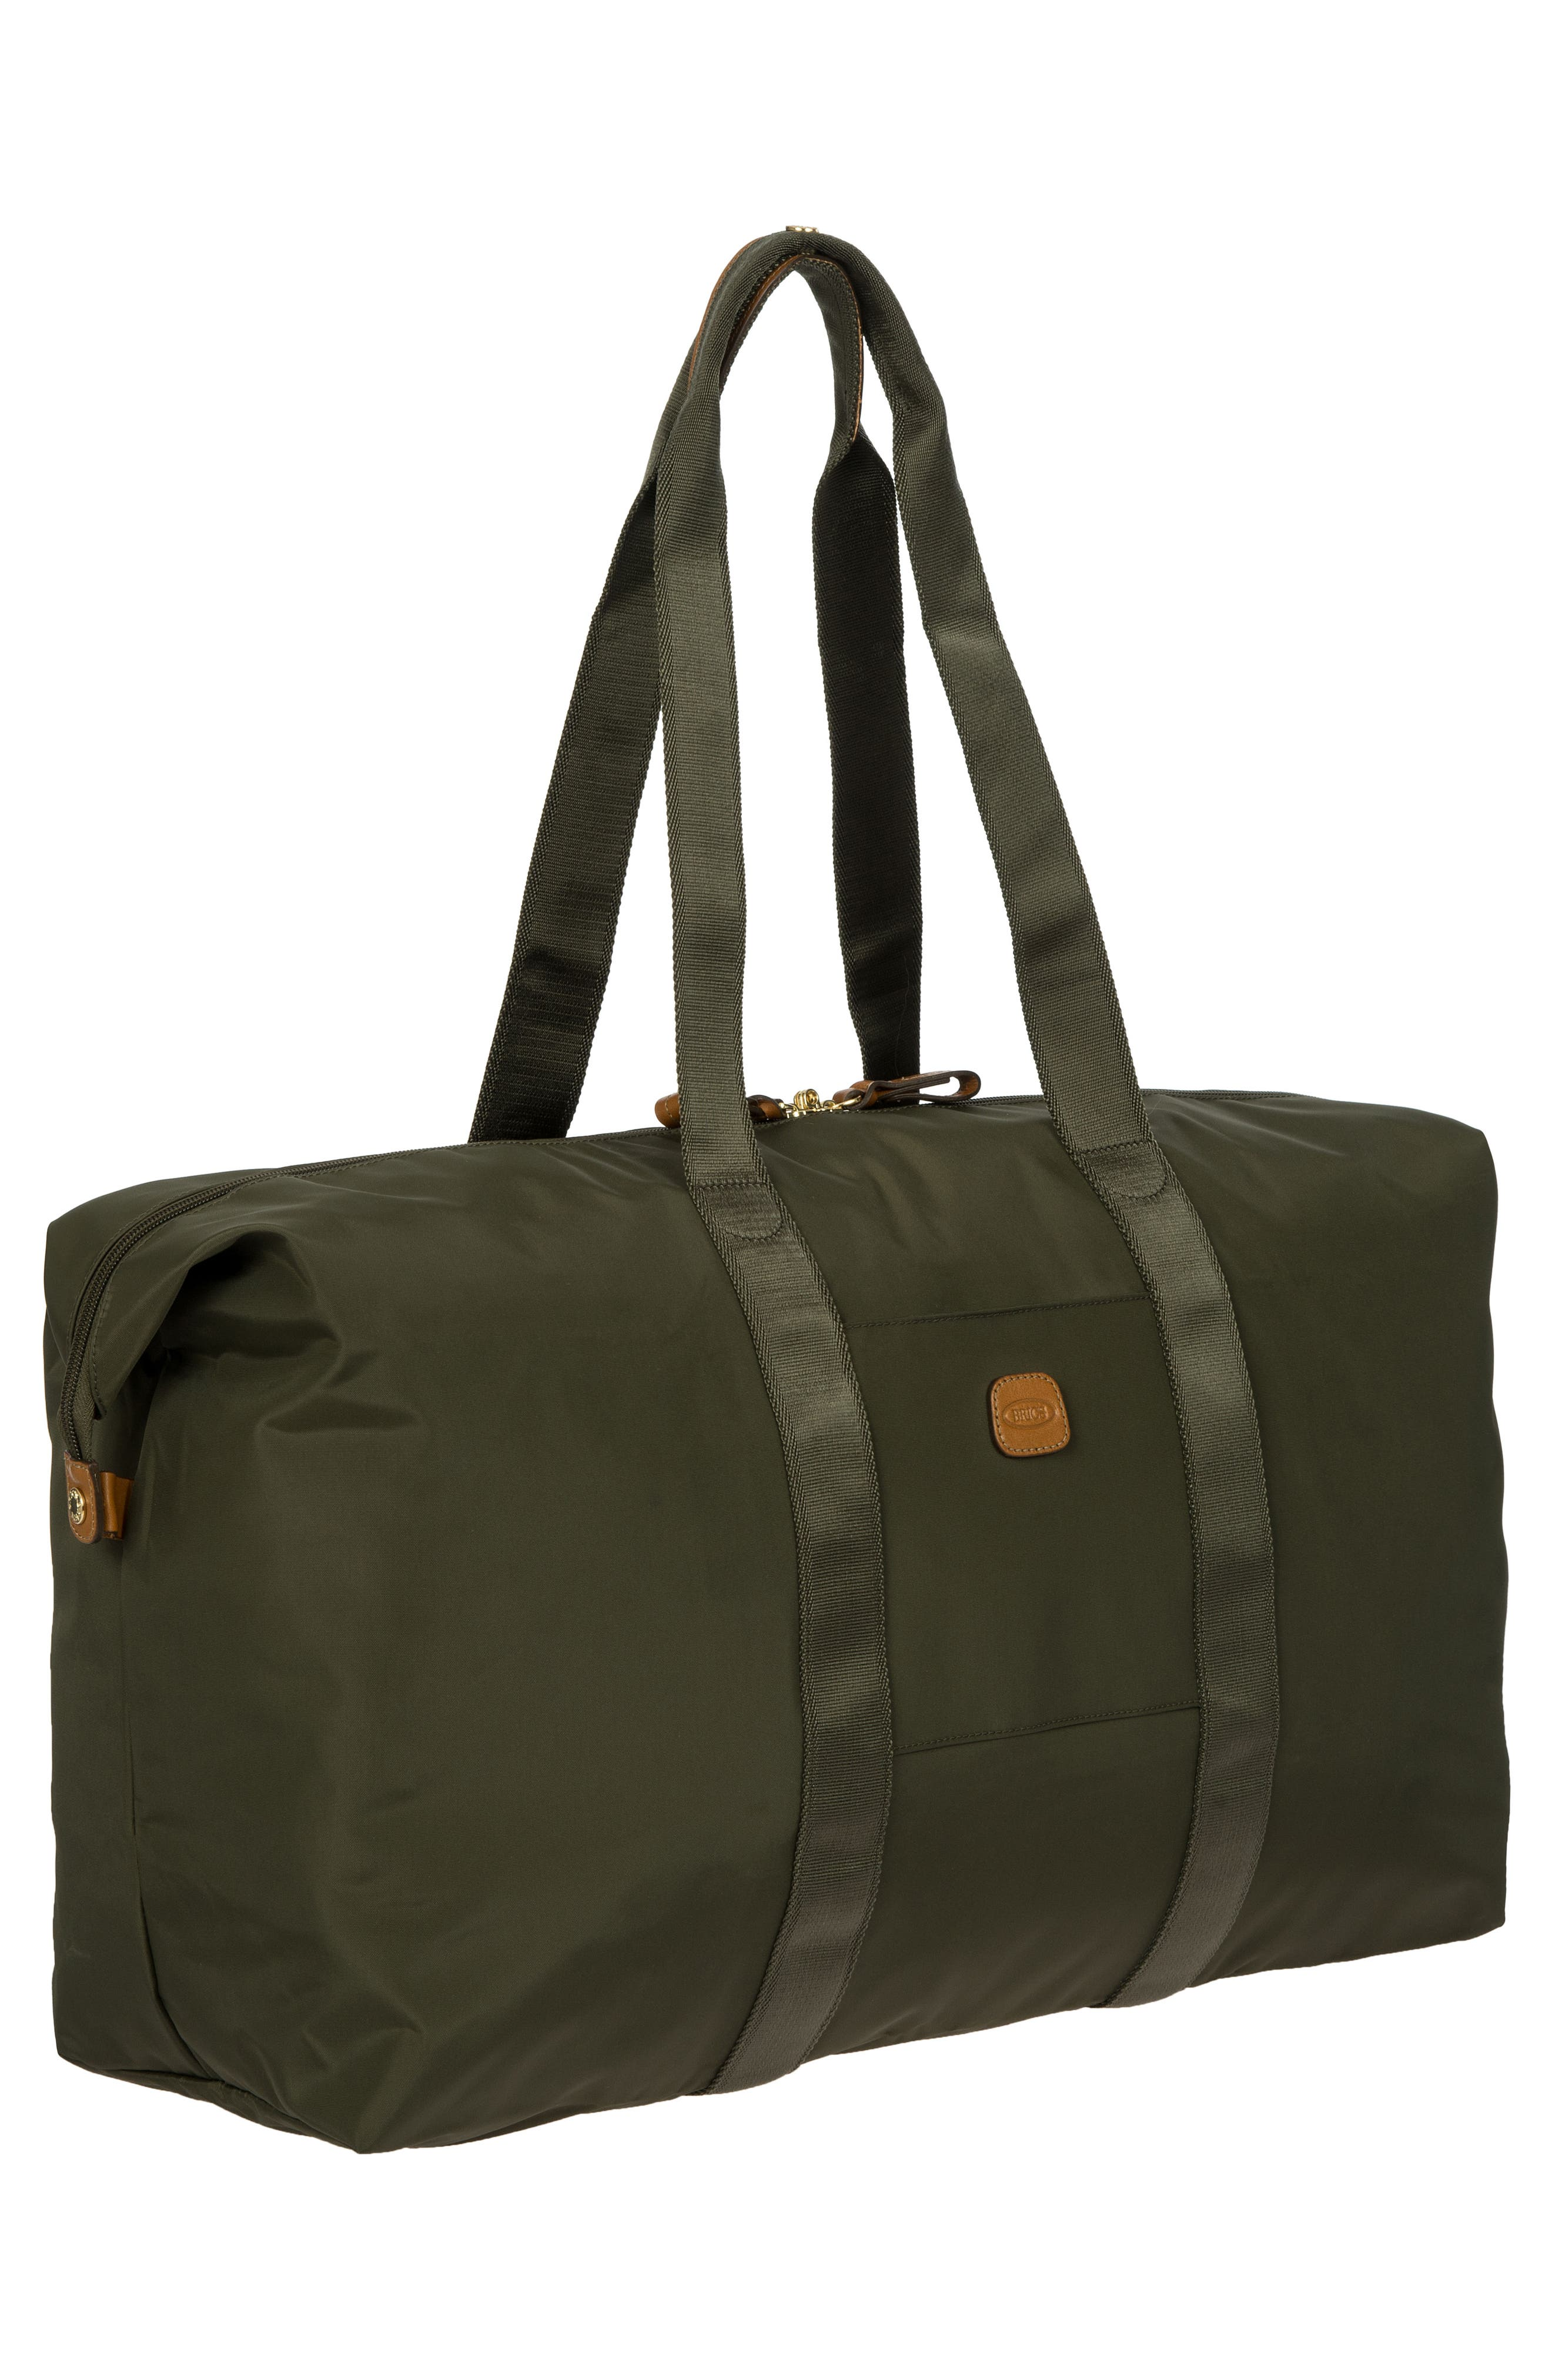 X-Bag 22-Inch Folding Duffel Bag,                             Alternate thumbnail 7, color,                             Olive